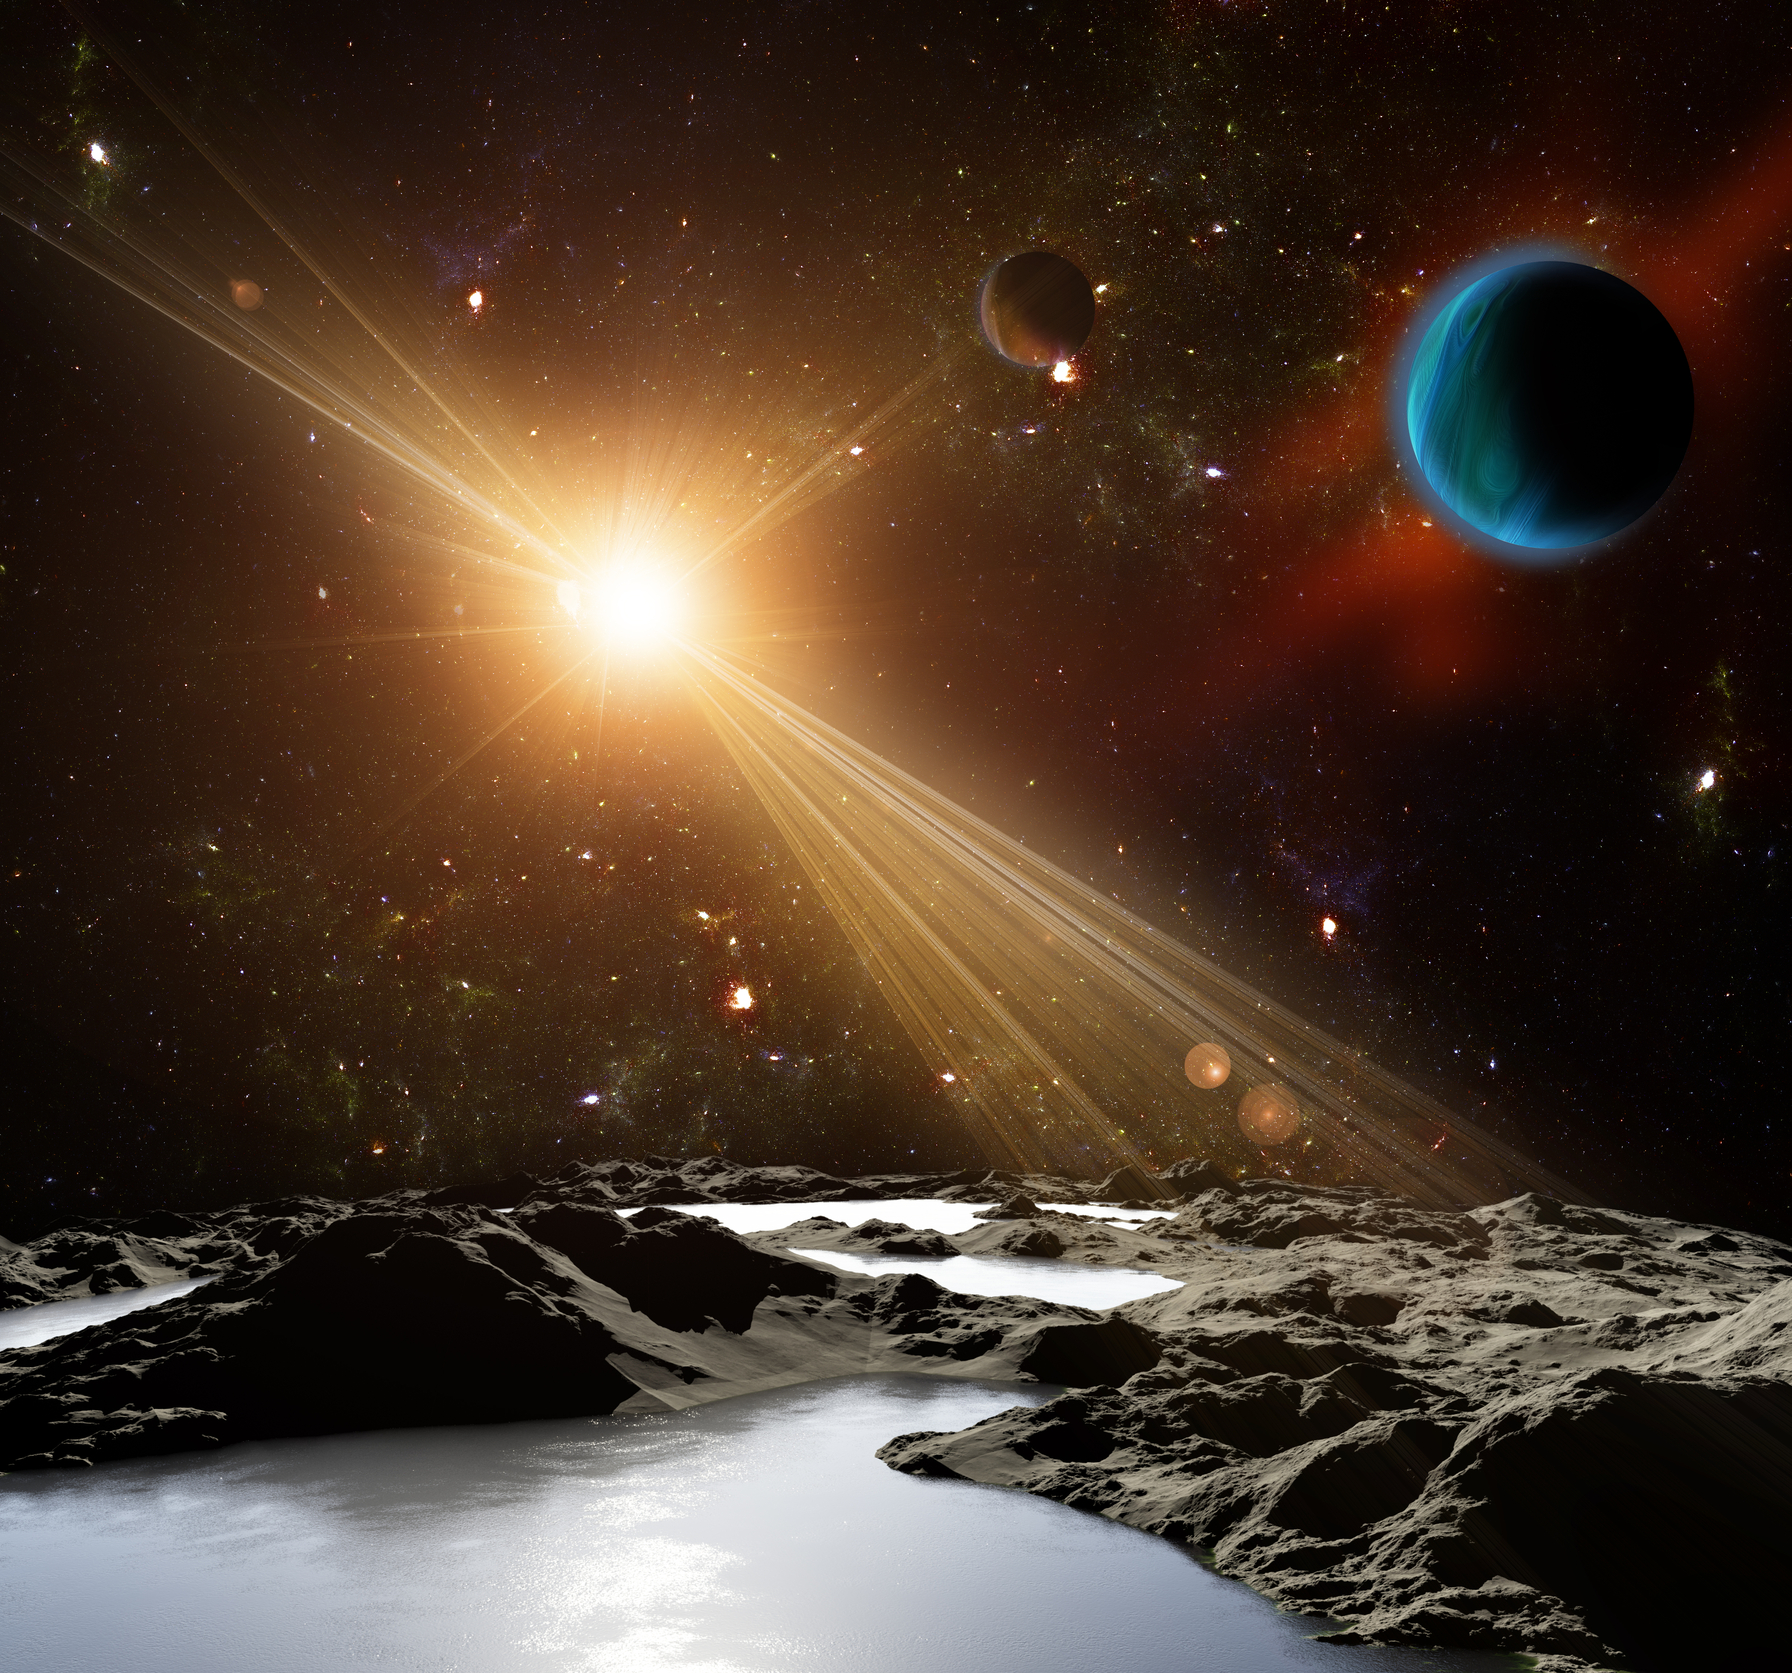 Star And Planetary Formation